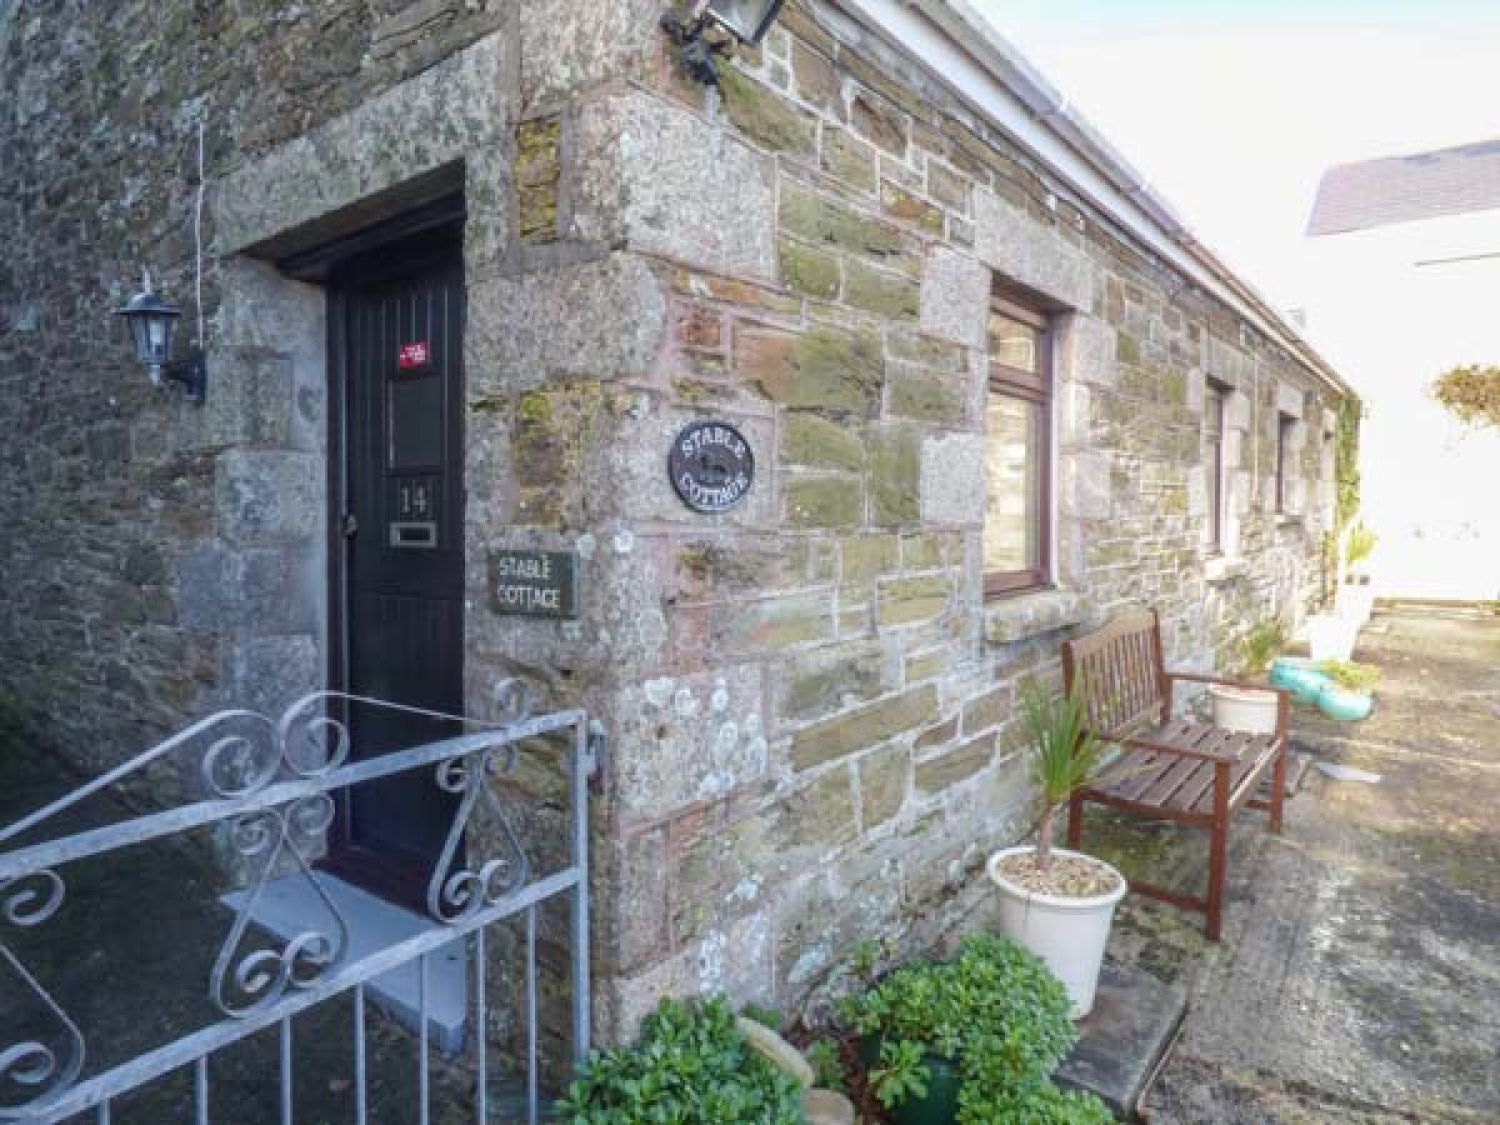 Stable Cottage in Porth near Newquay - sleeps 4 people